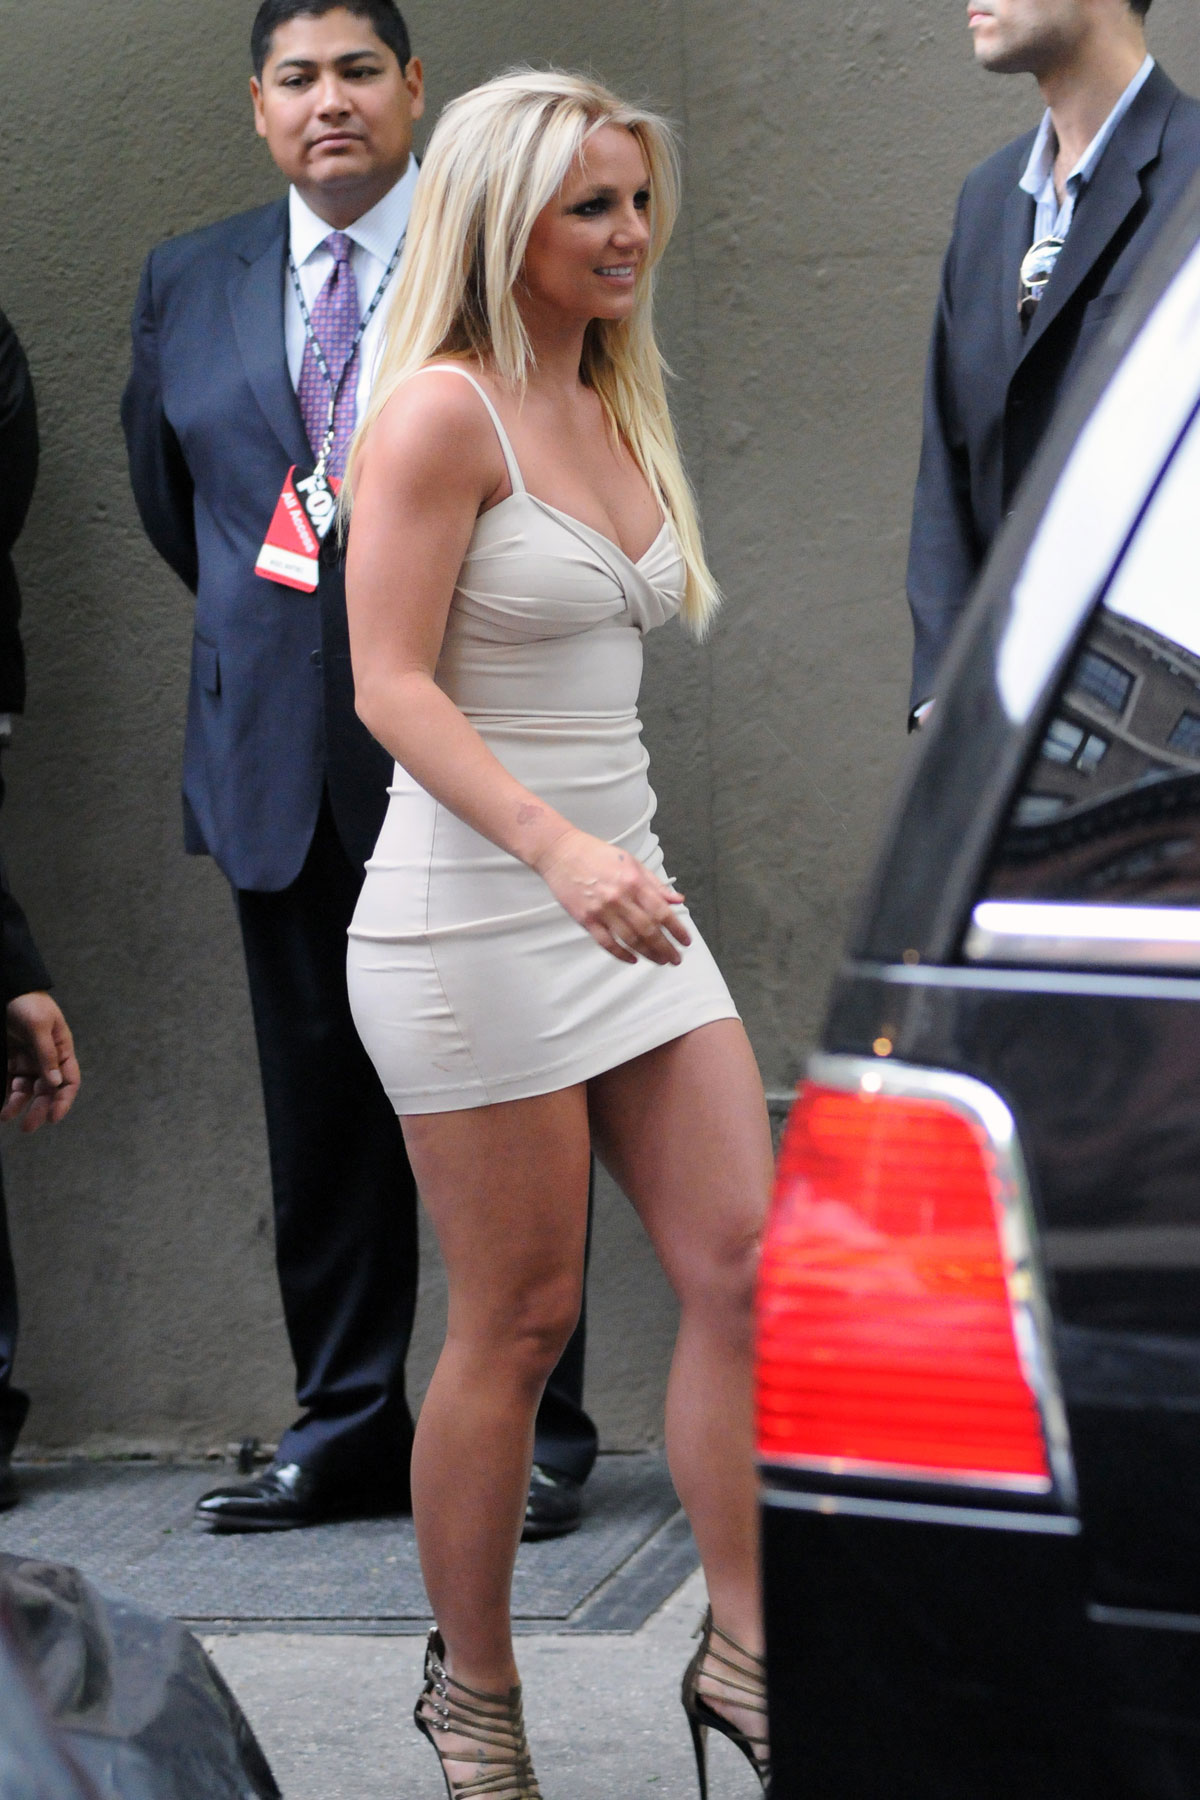 BRITNEY-SPEARS-Arriving-at-2012-Fox-Upfr